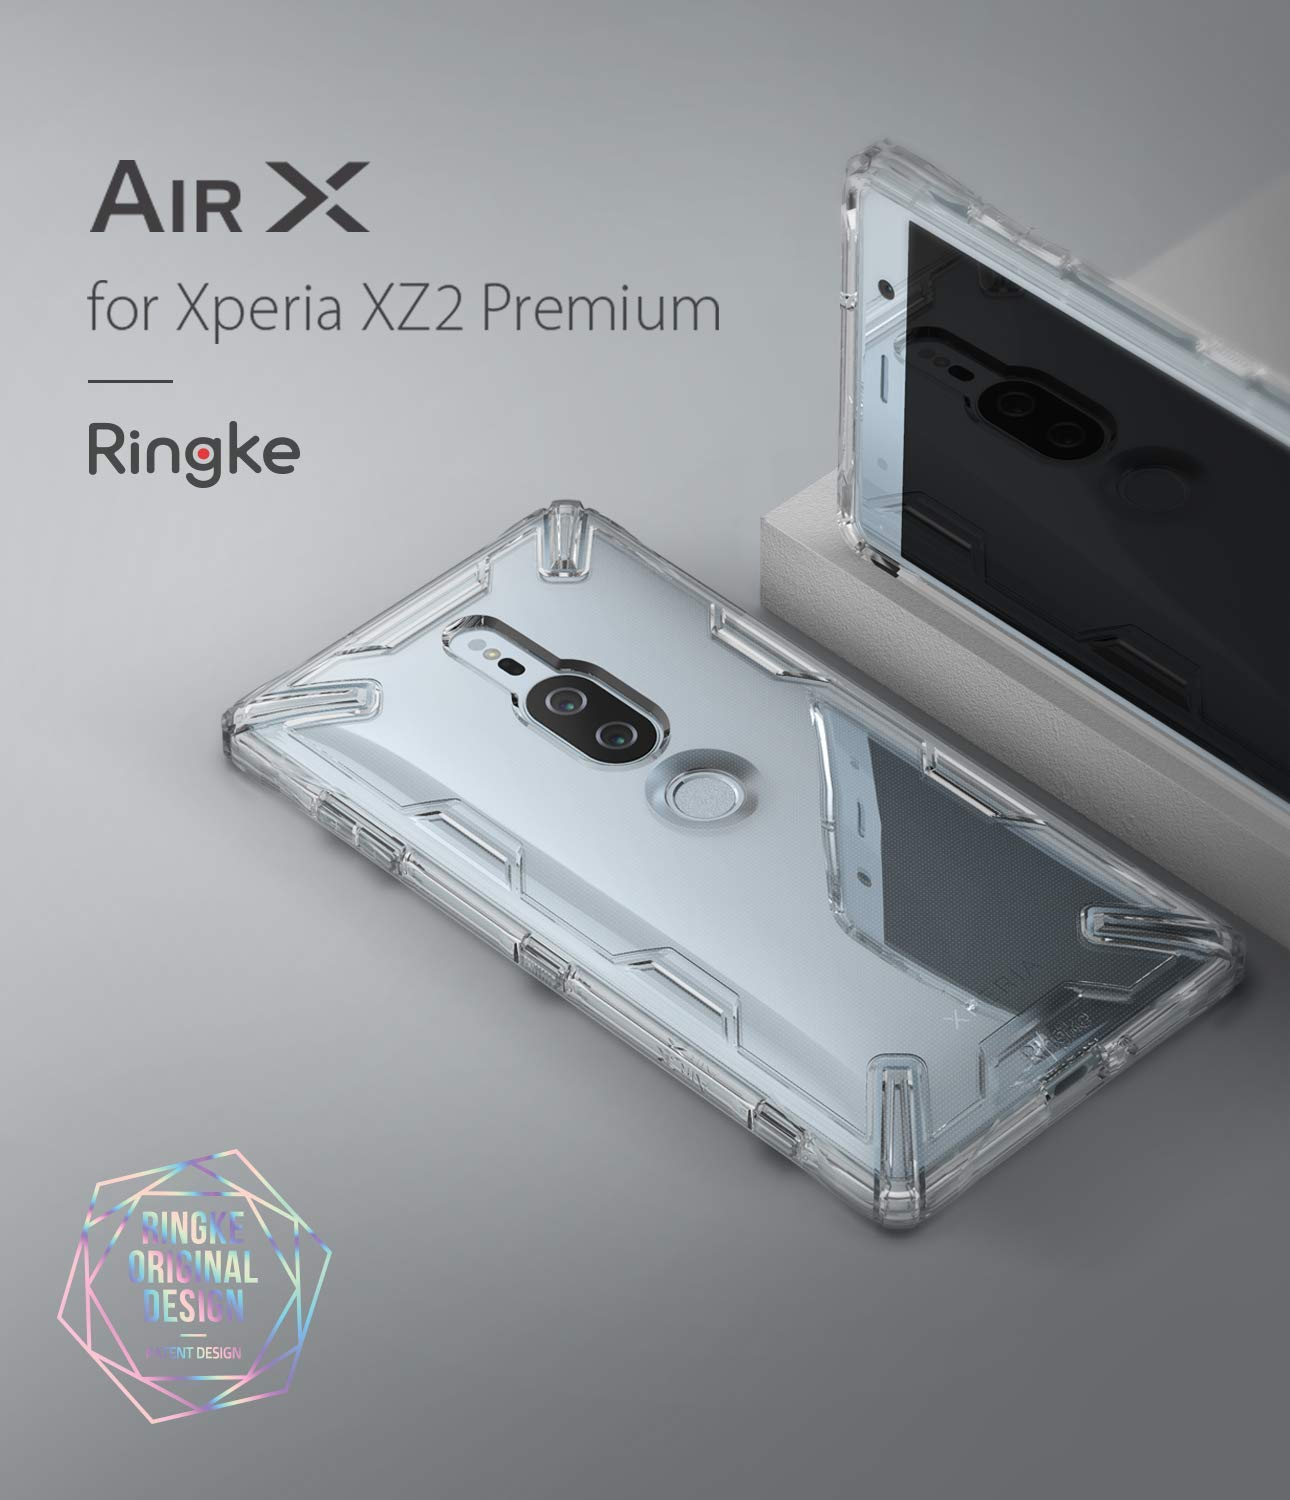 xperia xz2 premium air case x smoke black